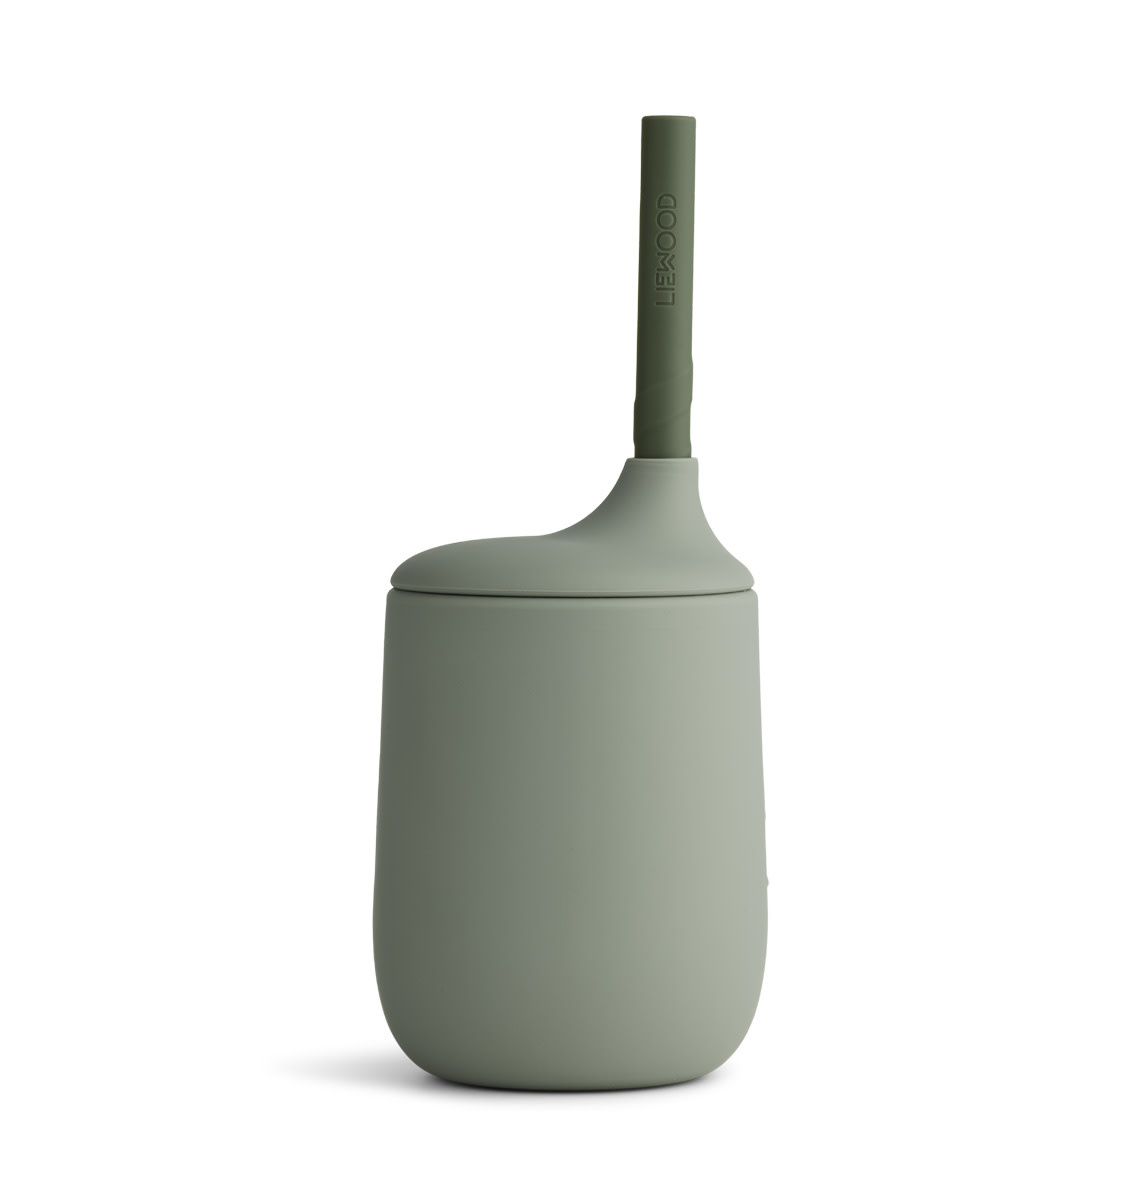 Ellis sippy cup faune green/hunter green-1